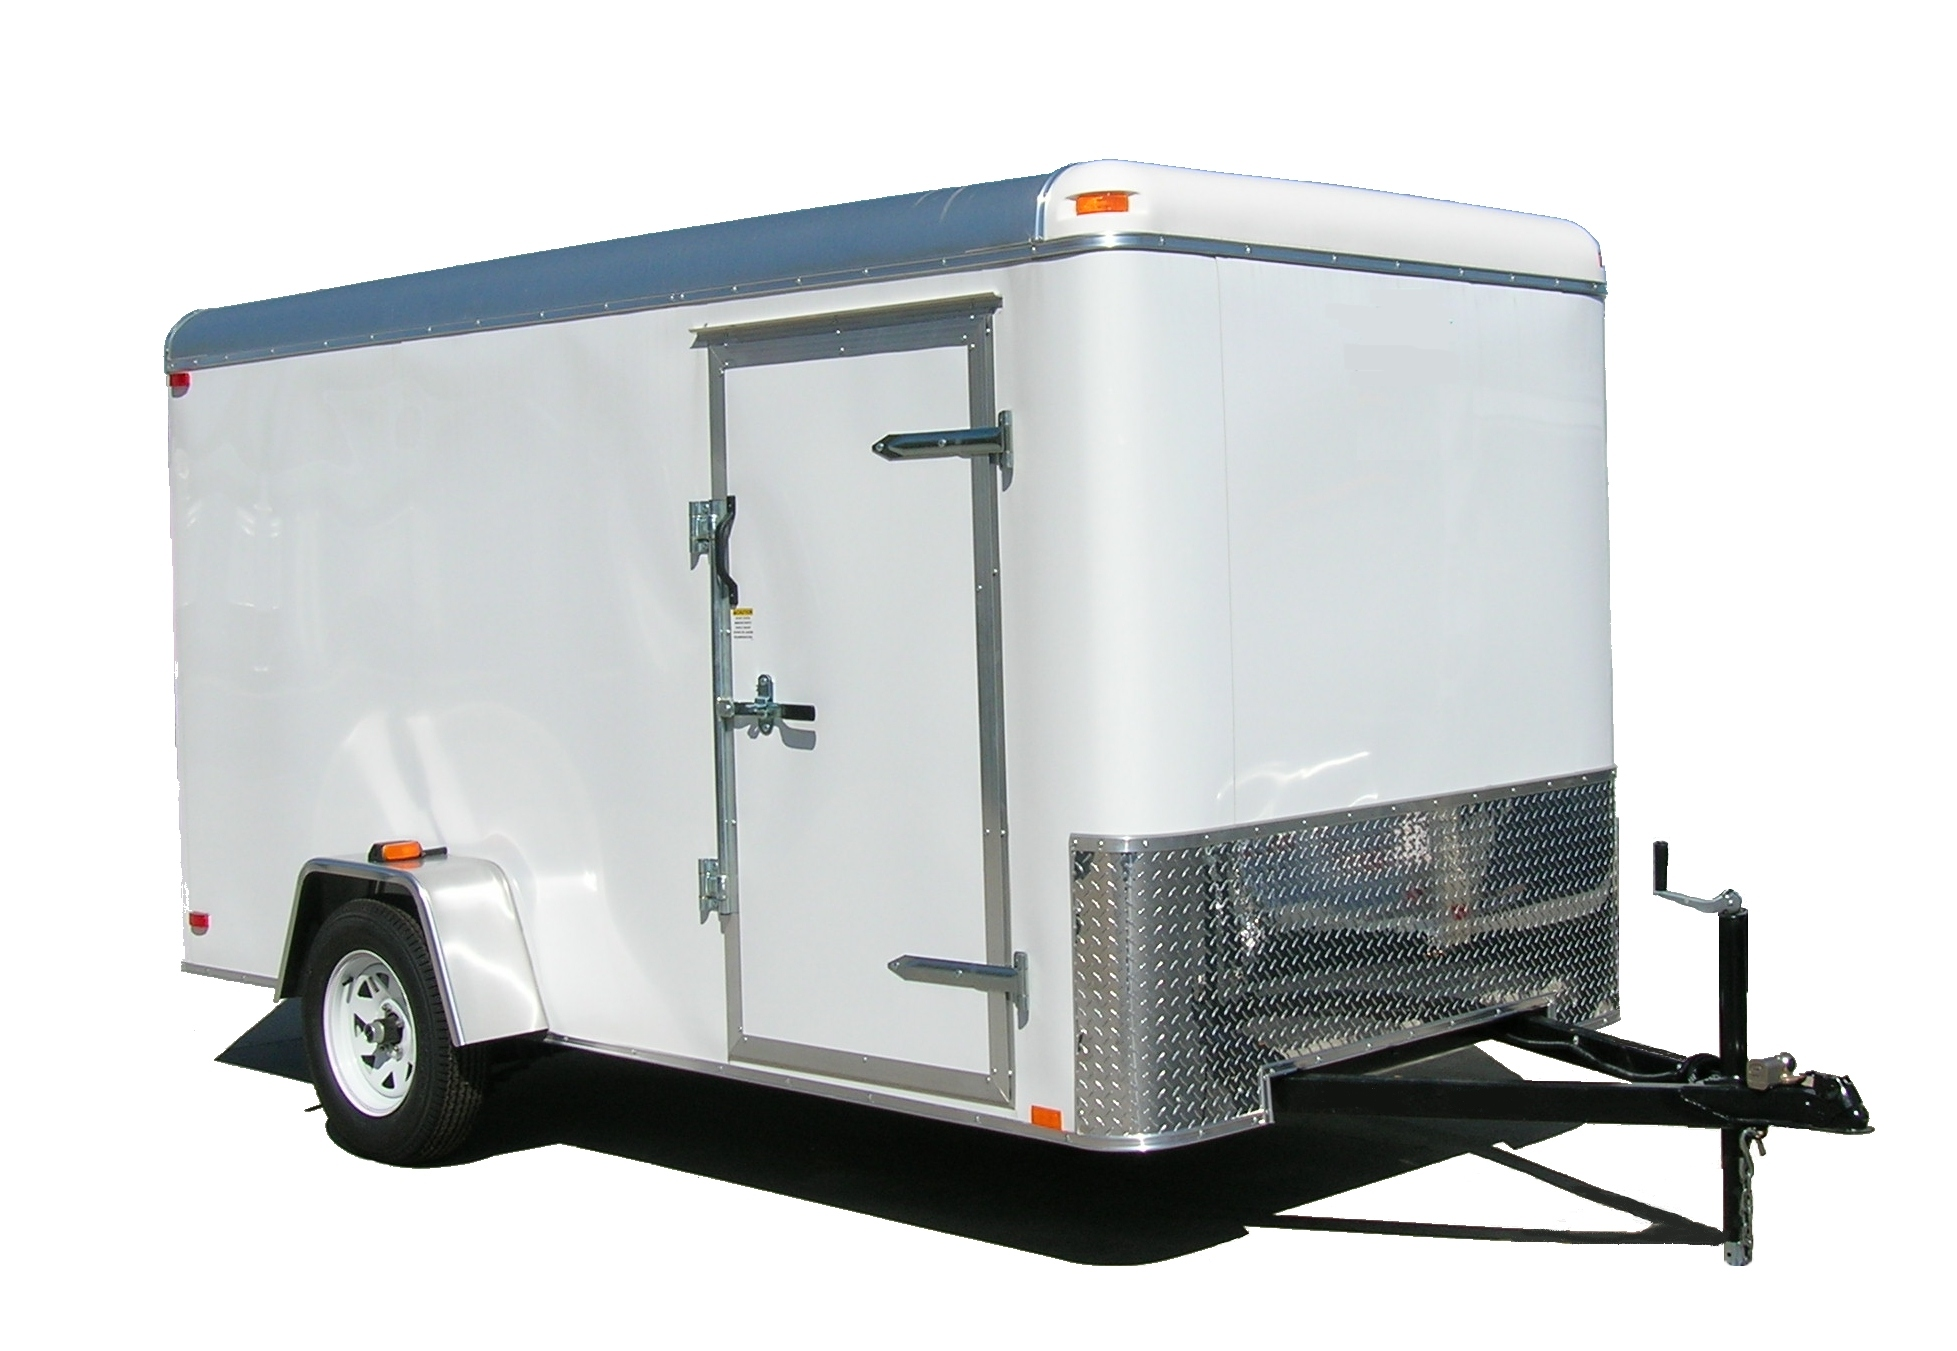 U Haul Small Enclosed Trailer For Sale UHaul 4x8 Cargo Trailer